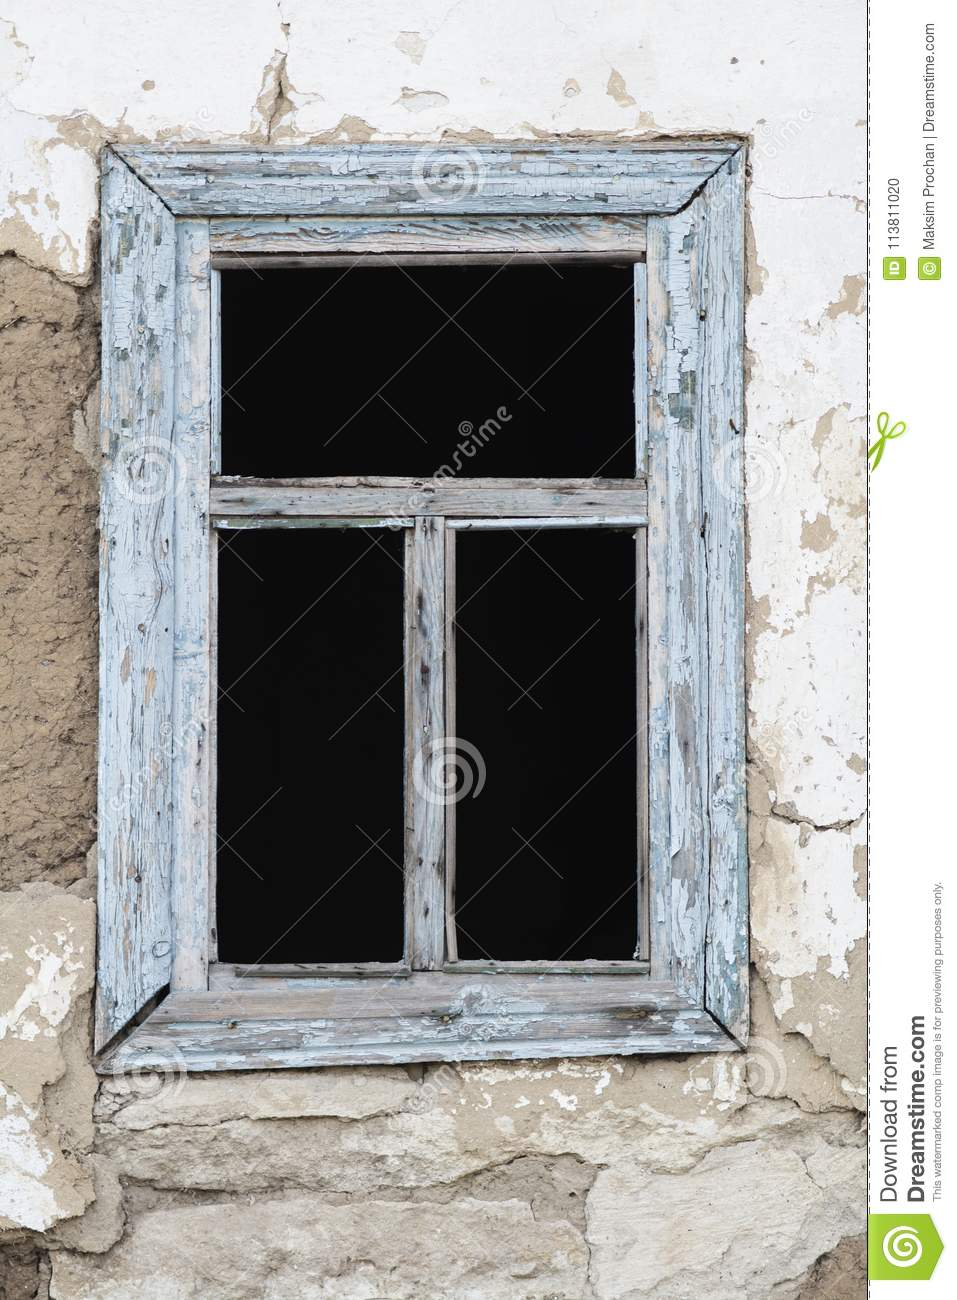 Admirable Old Rural House Window With Broken Glass Abandoned House Download Free Architecture Designs Itiscsunscenecom